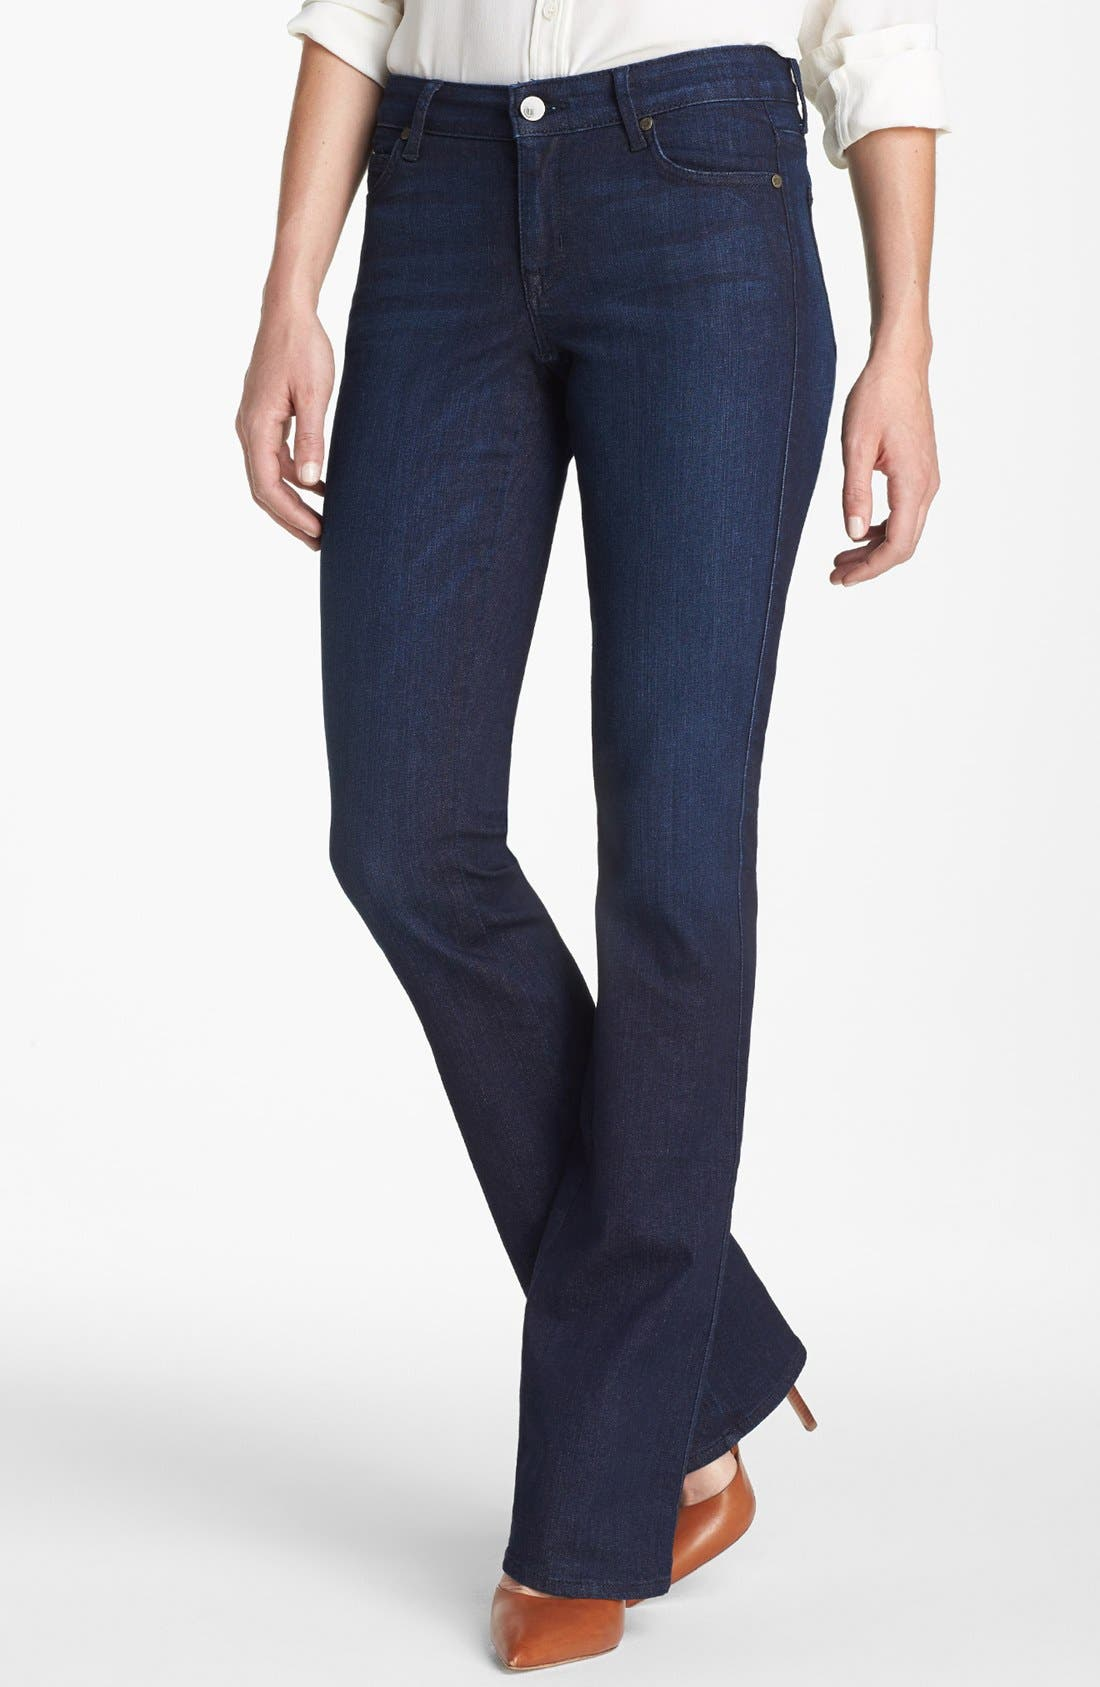 Main Image - CJ by Cookie Johnson 'Life' Baby Bootcut Jeans